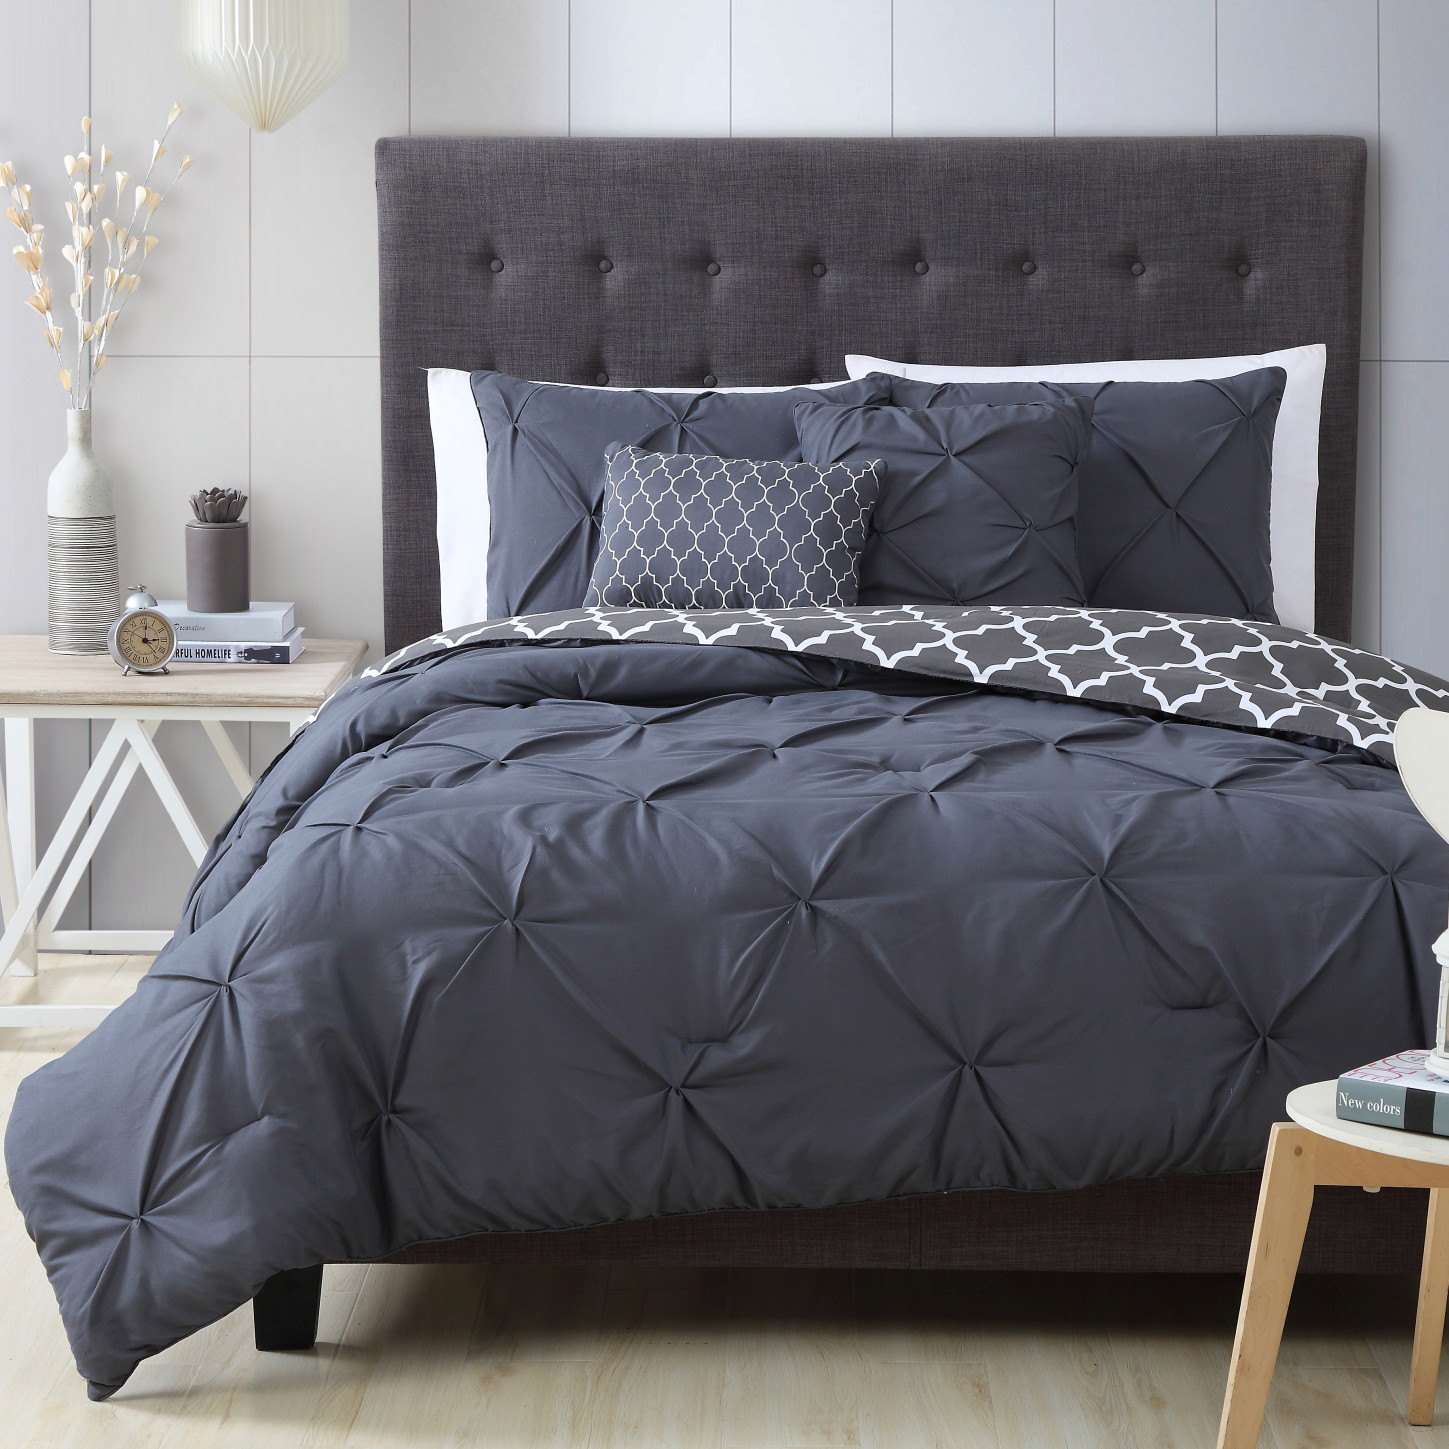 Walmart Bed Sheets | Quilt Bedding Sets Queen | Queen Bedding Sets